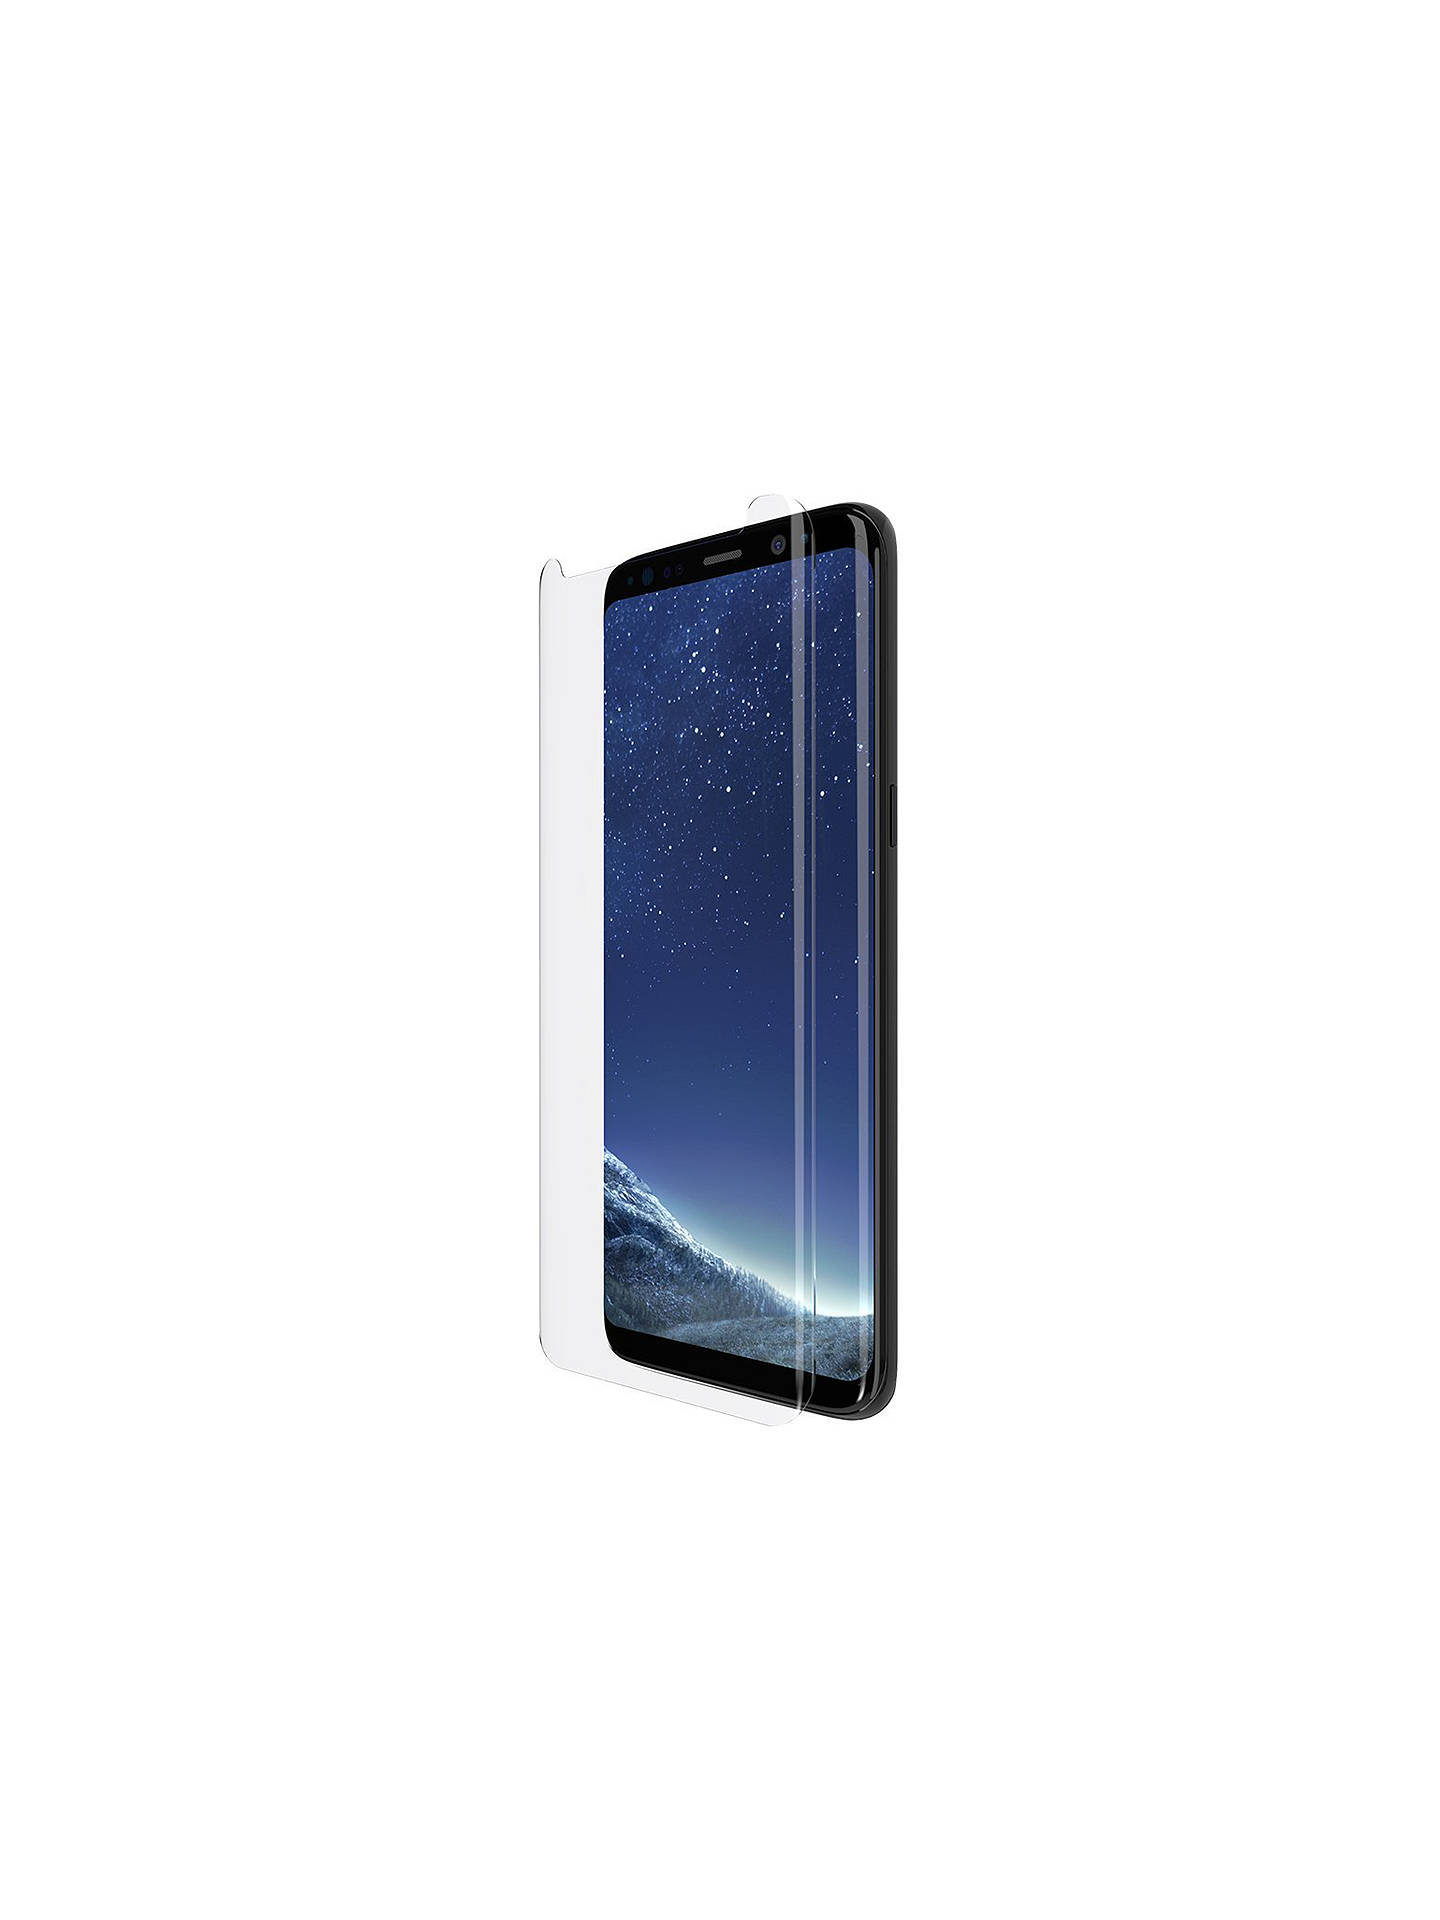 Buytech21 Impact Shield Anti Scratch Screen Protection for Samsung Galaxy S8, Clear Online at johnlewis.com